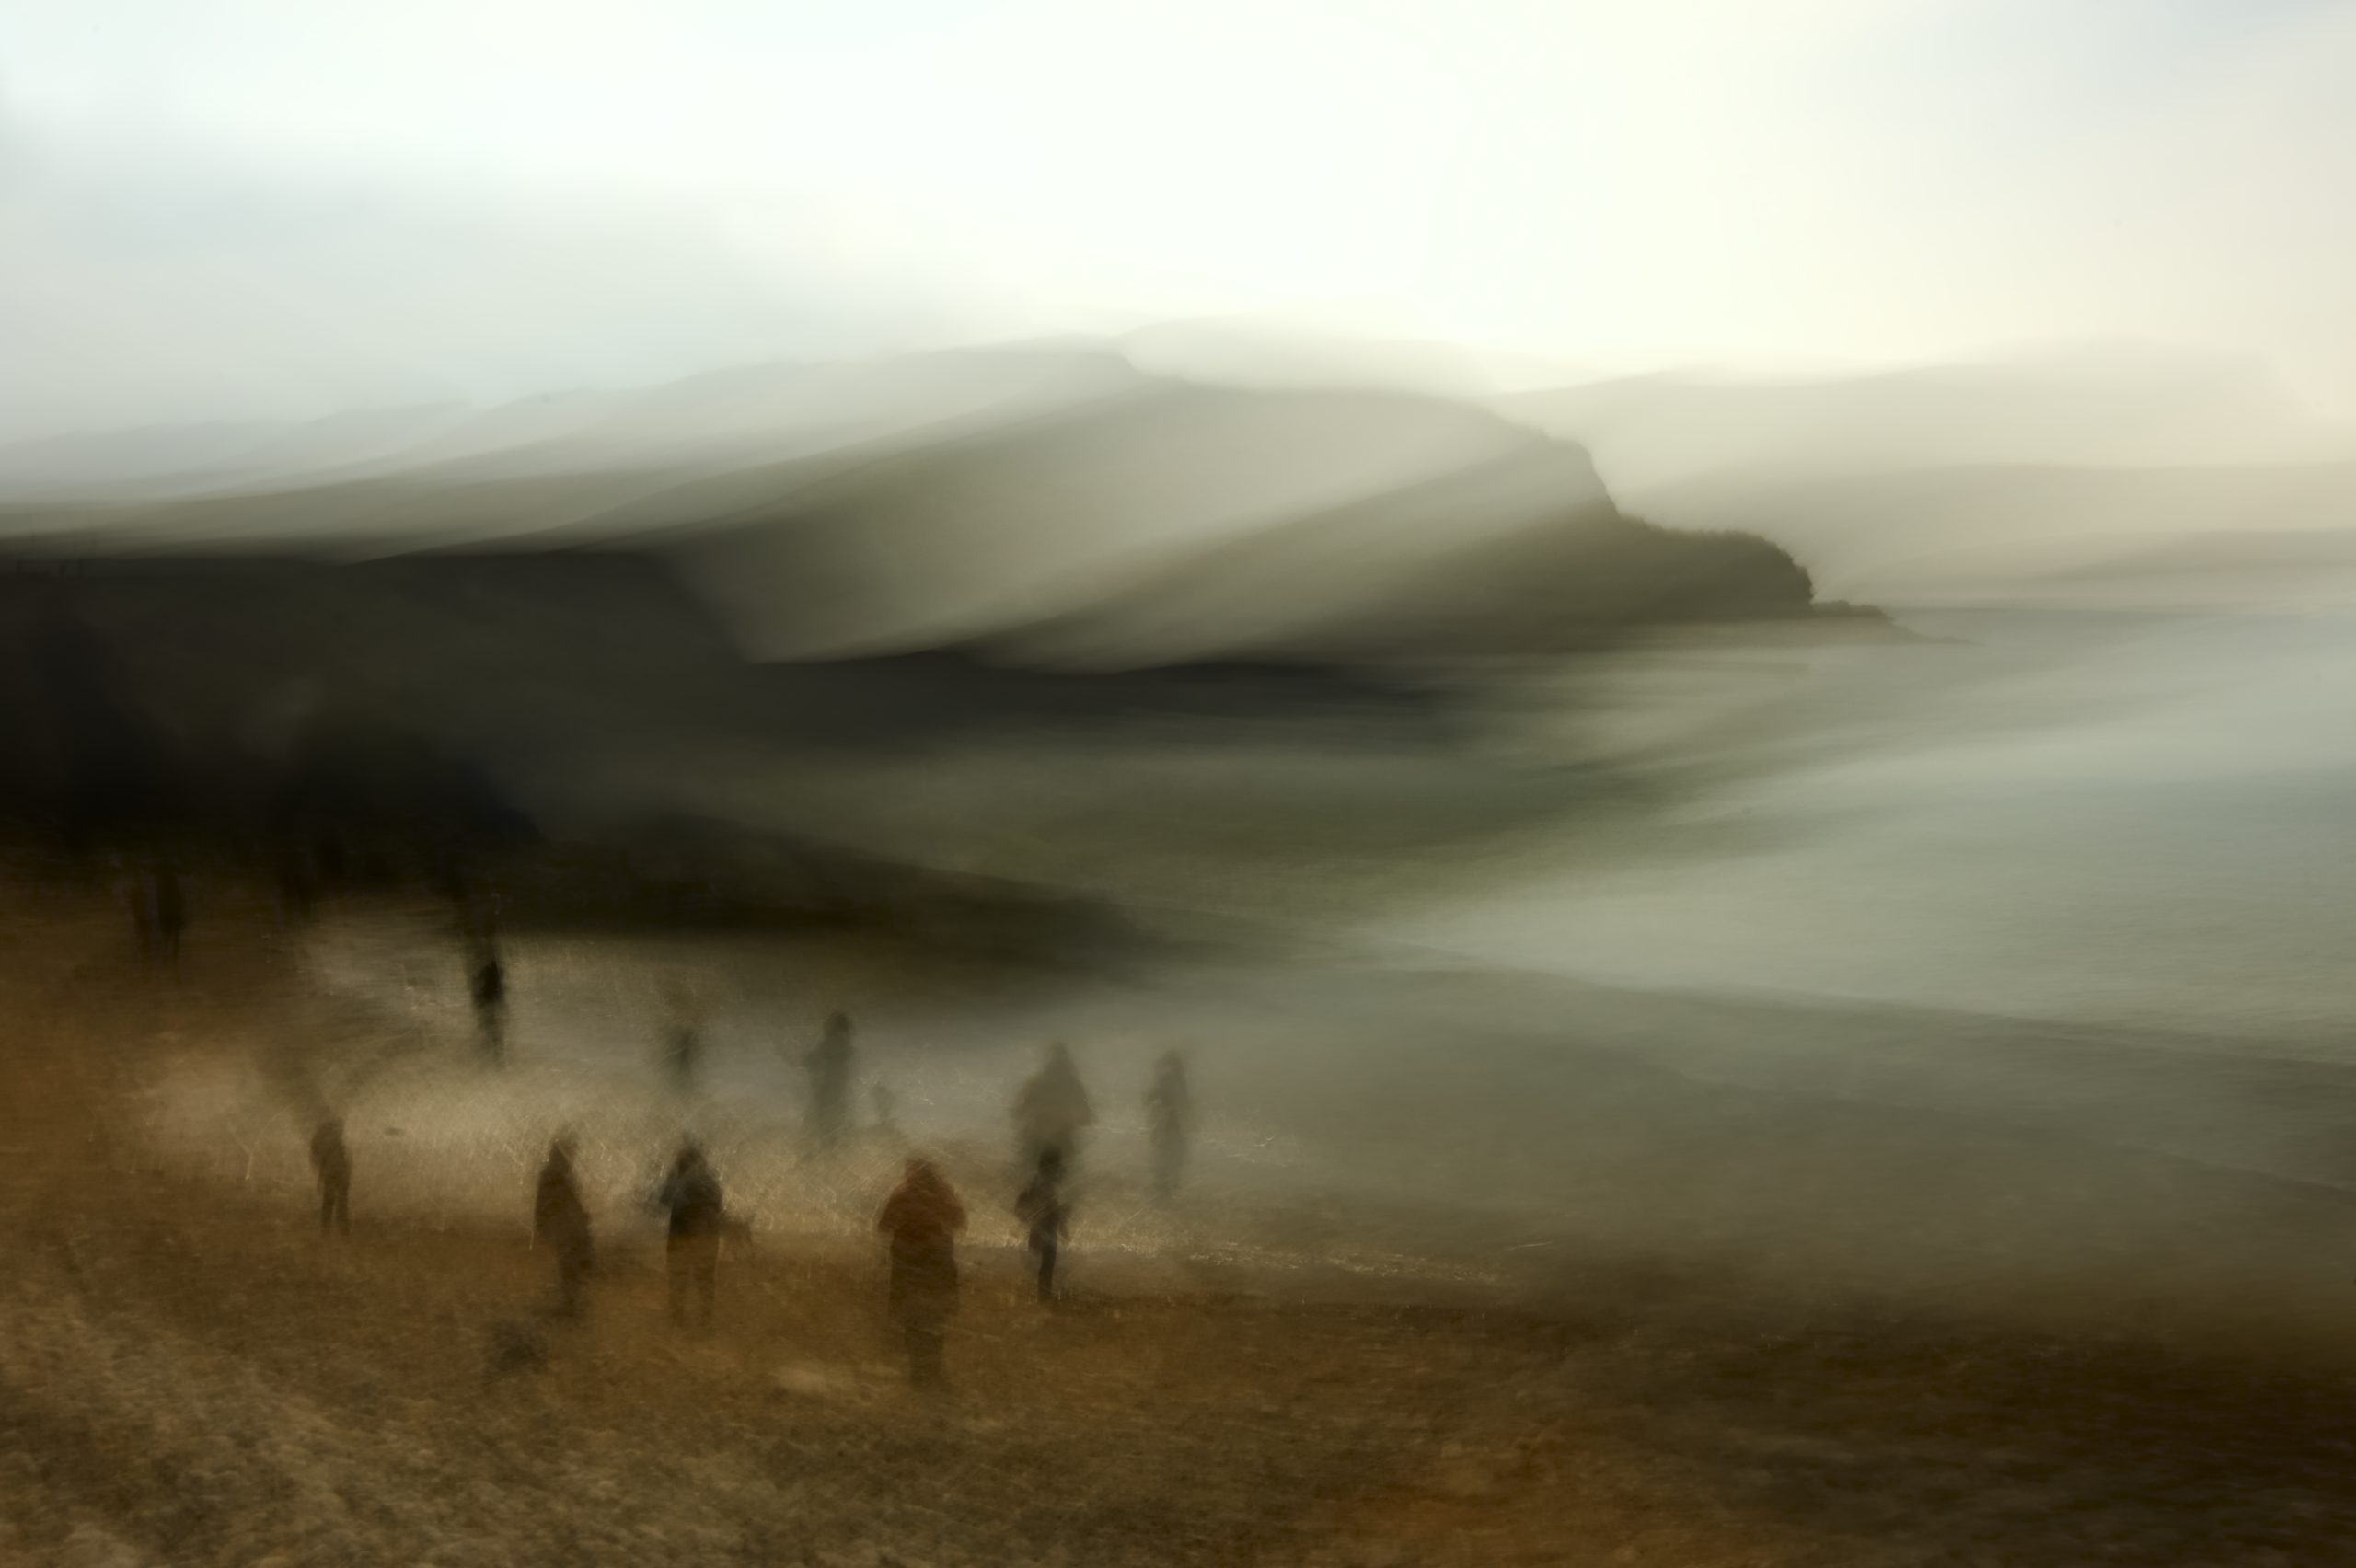 master-intentional-camera-movement-(icm)-for-more-creative-landscapes